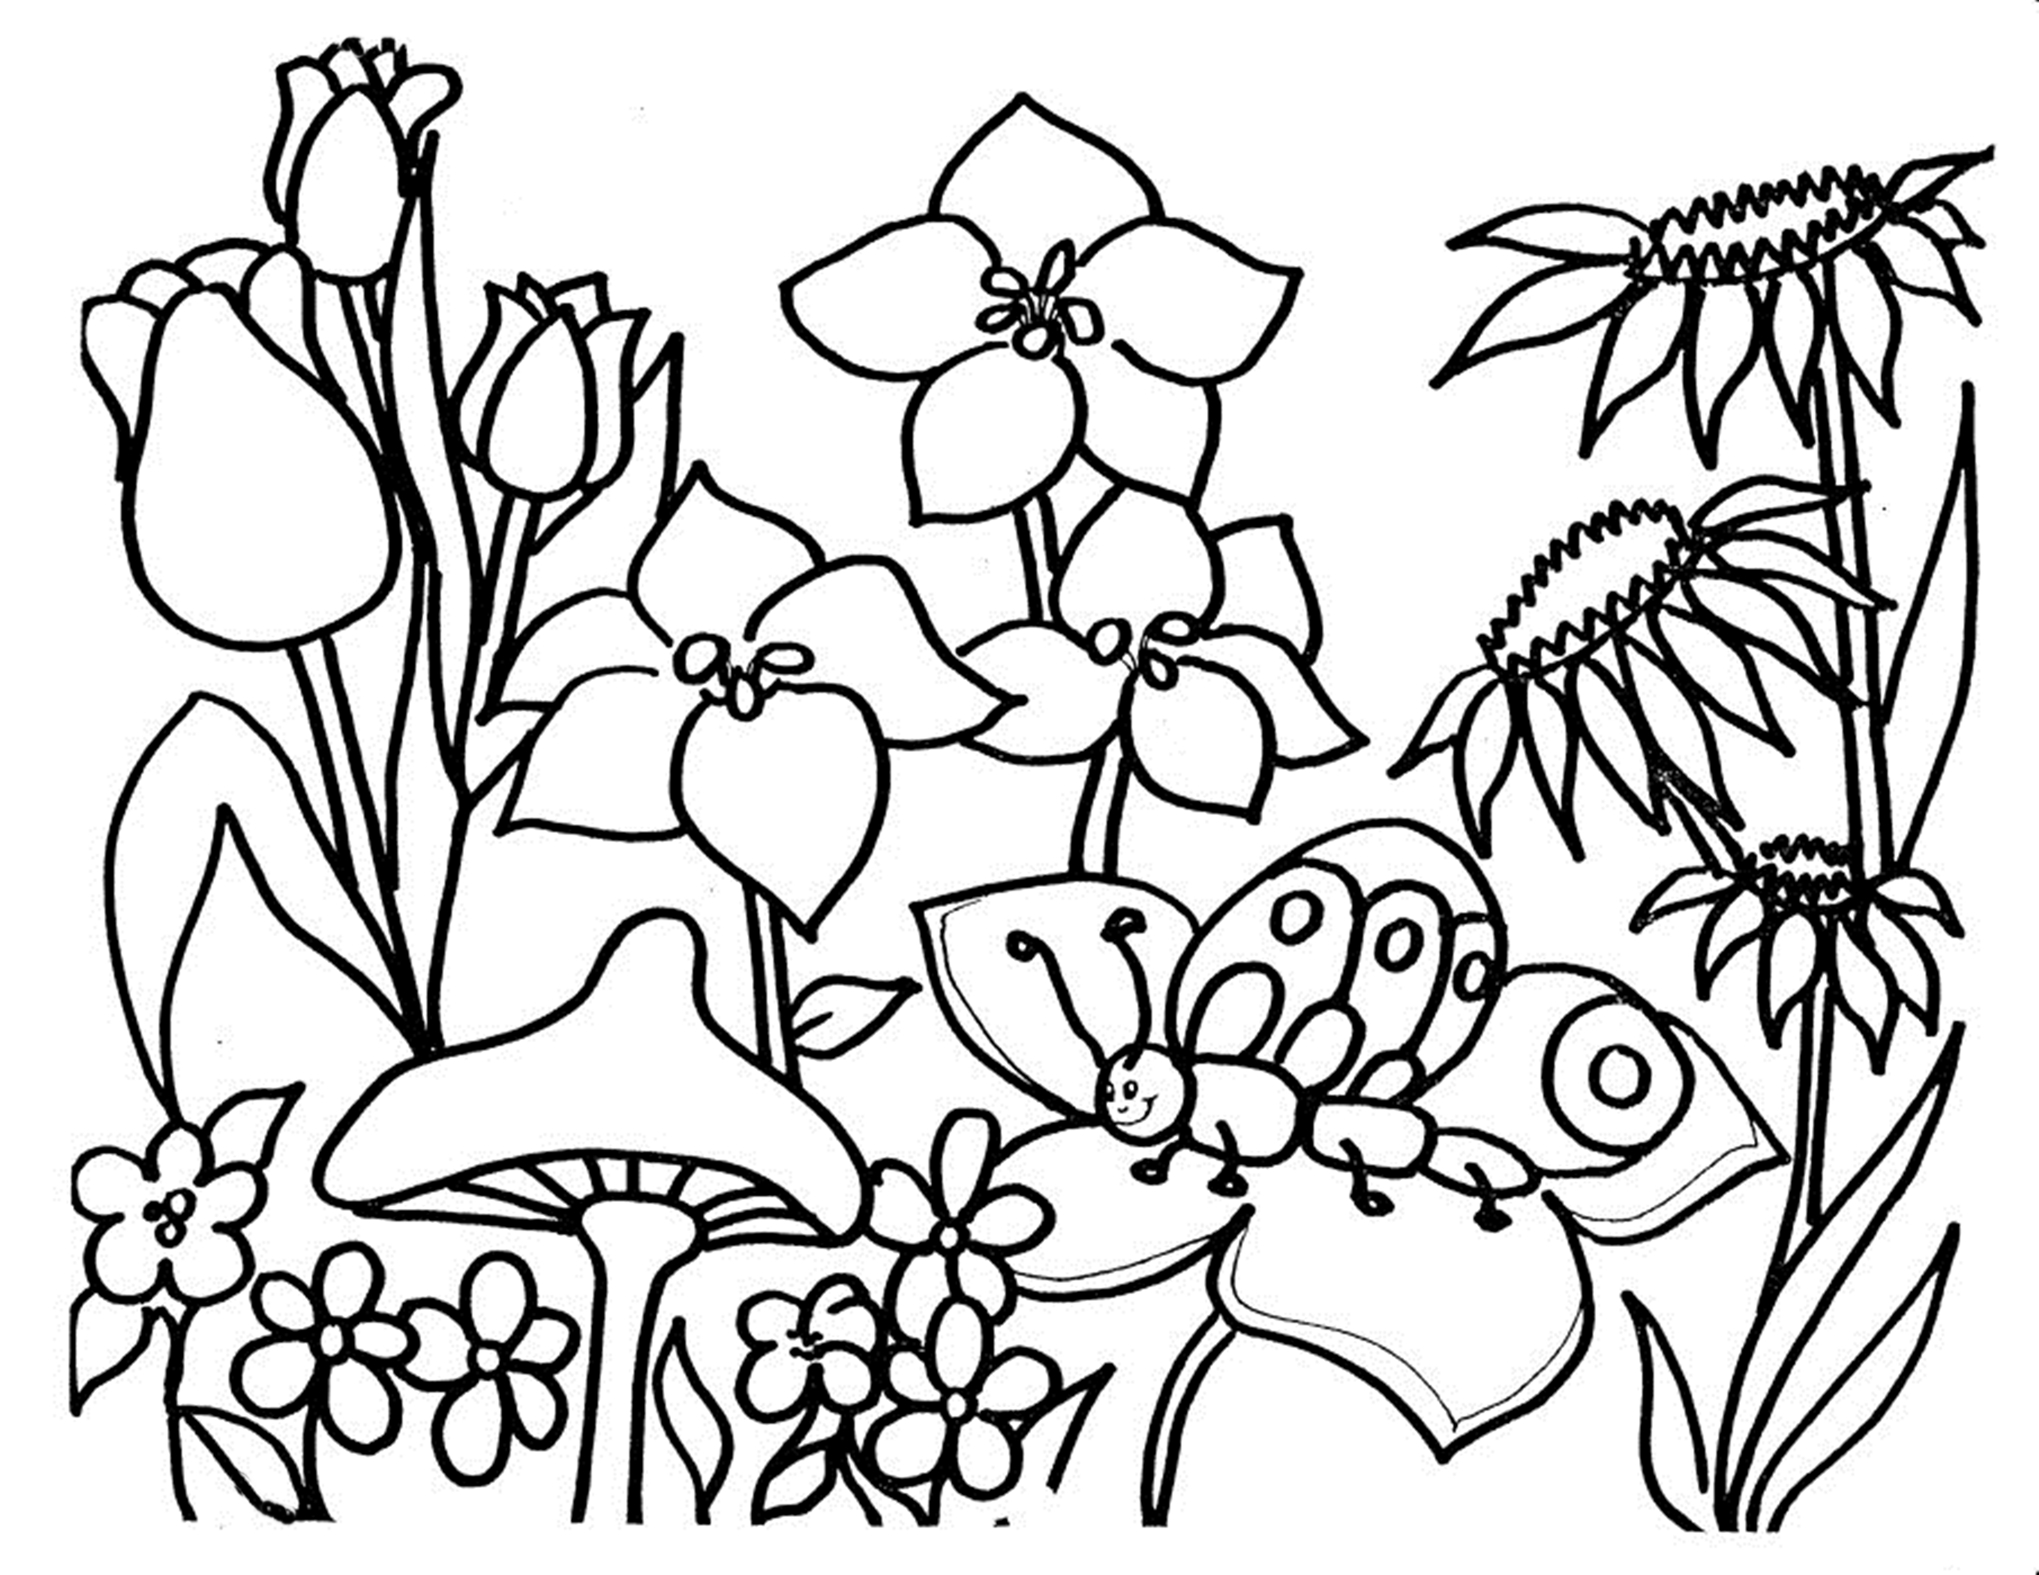 colouring pictures of flowers free printable flower coloring pages for kids best pictures flowers of colouring 1 1